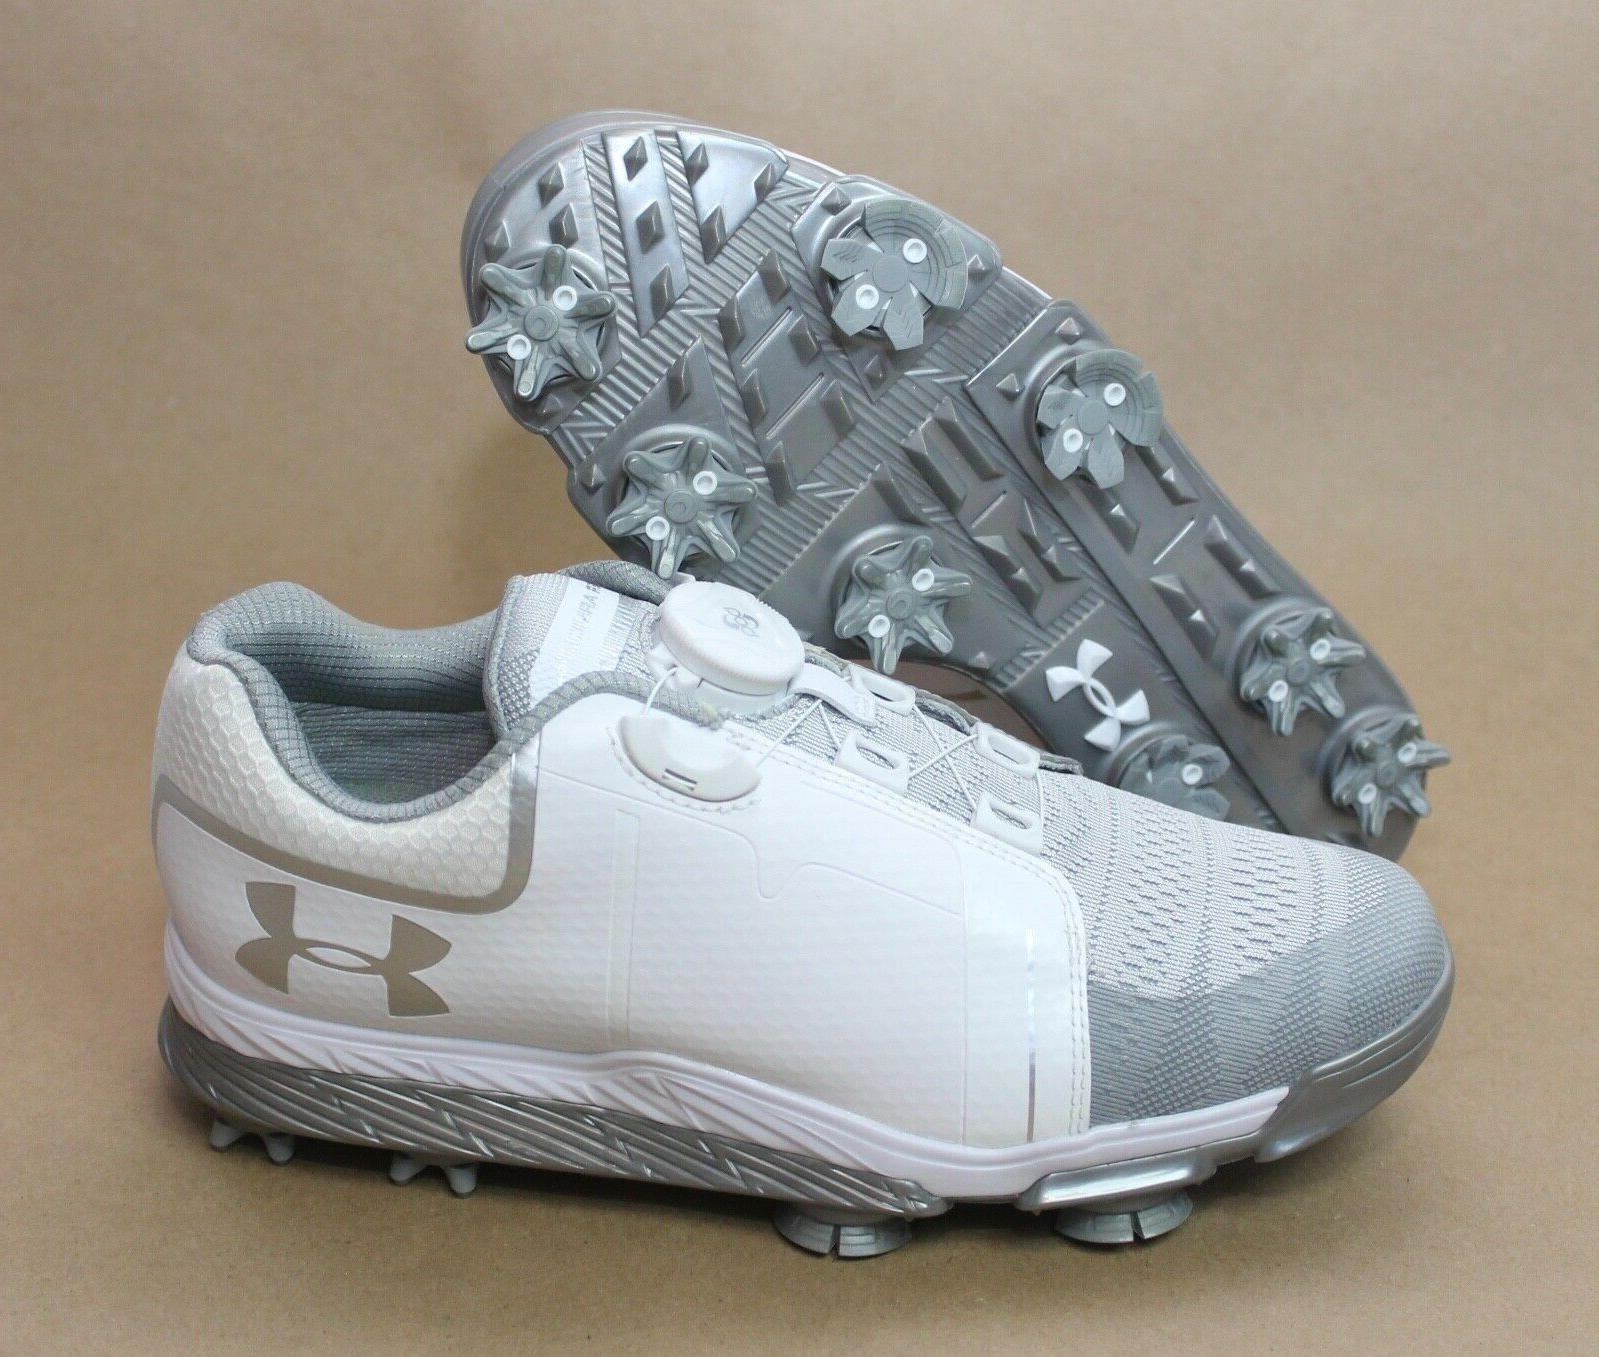 Under Armour UA Golf Shoes White 1292782-100 Size 6.5